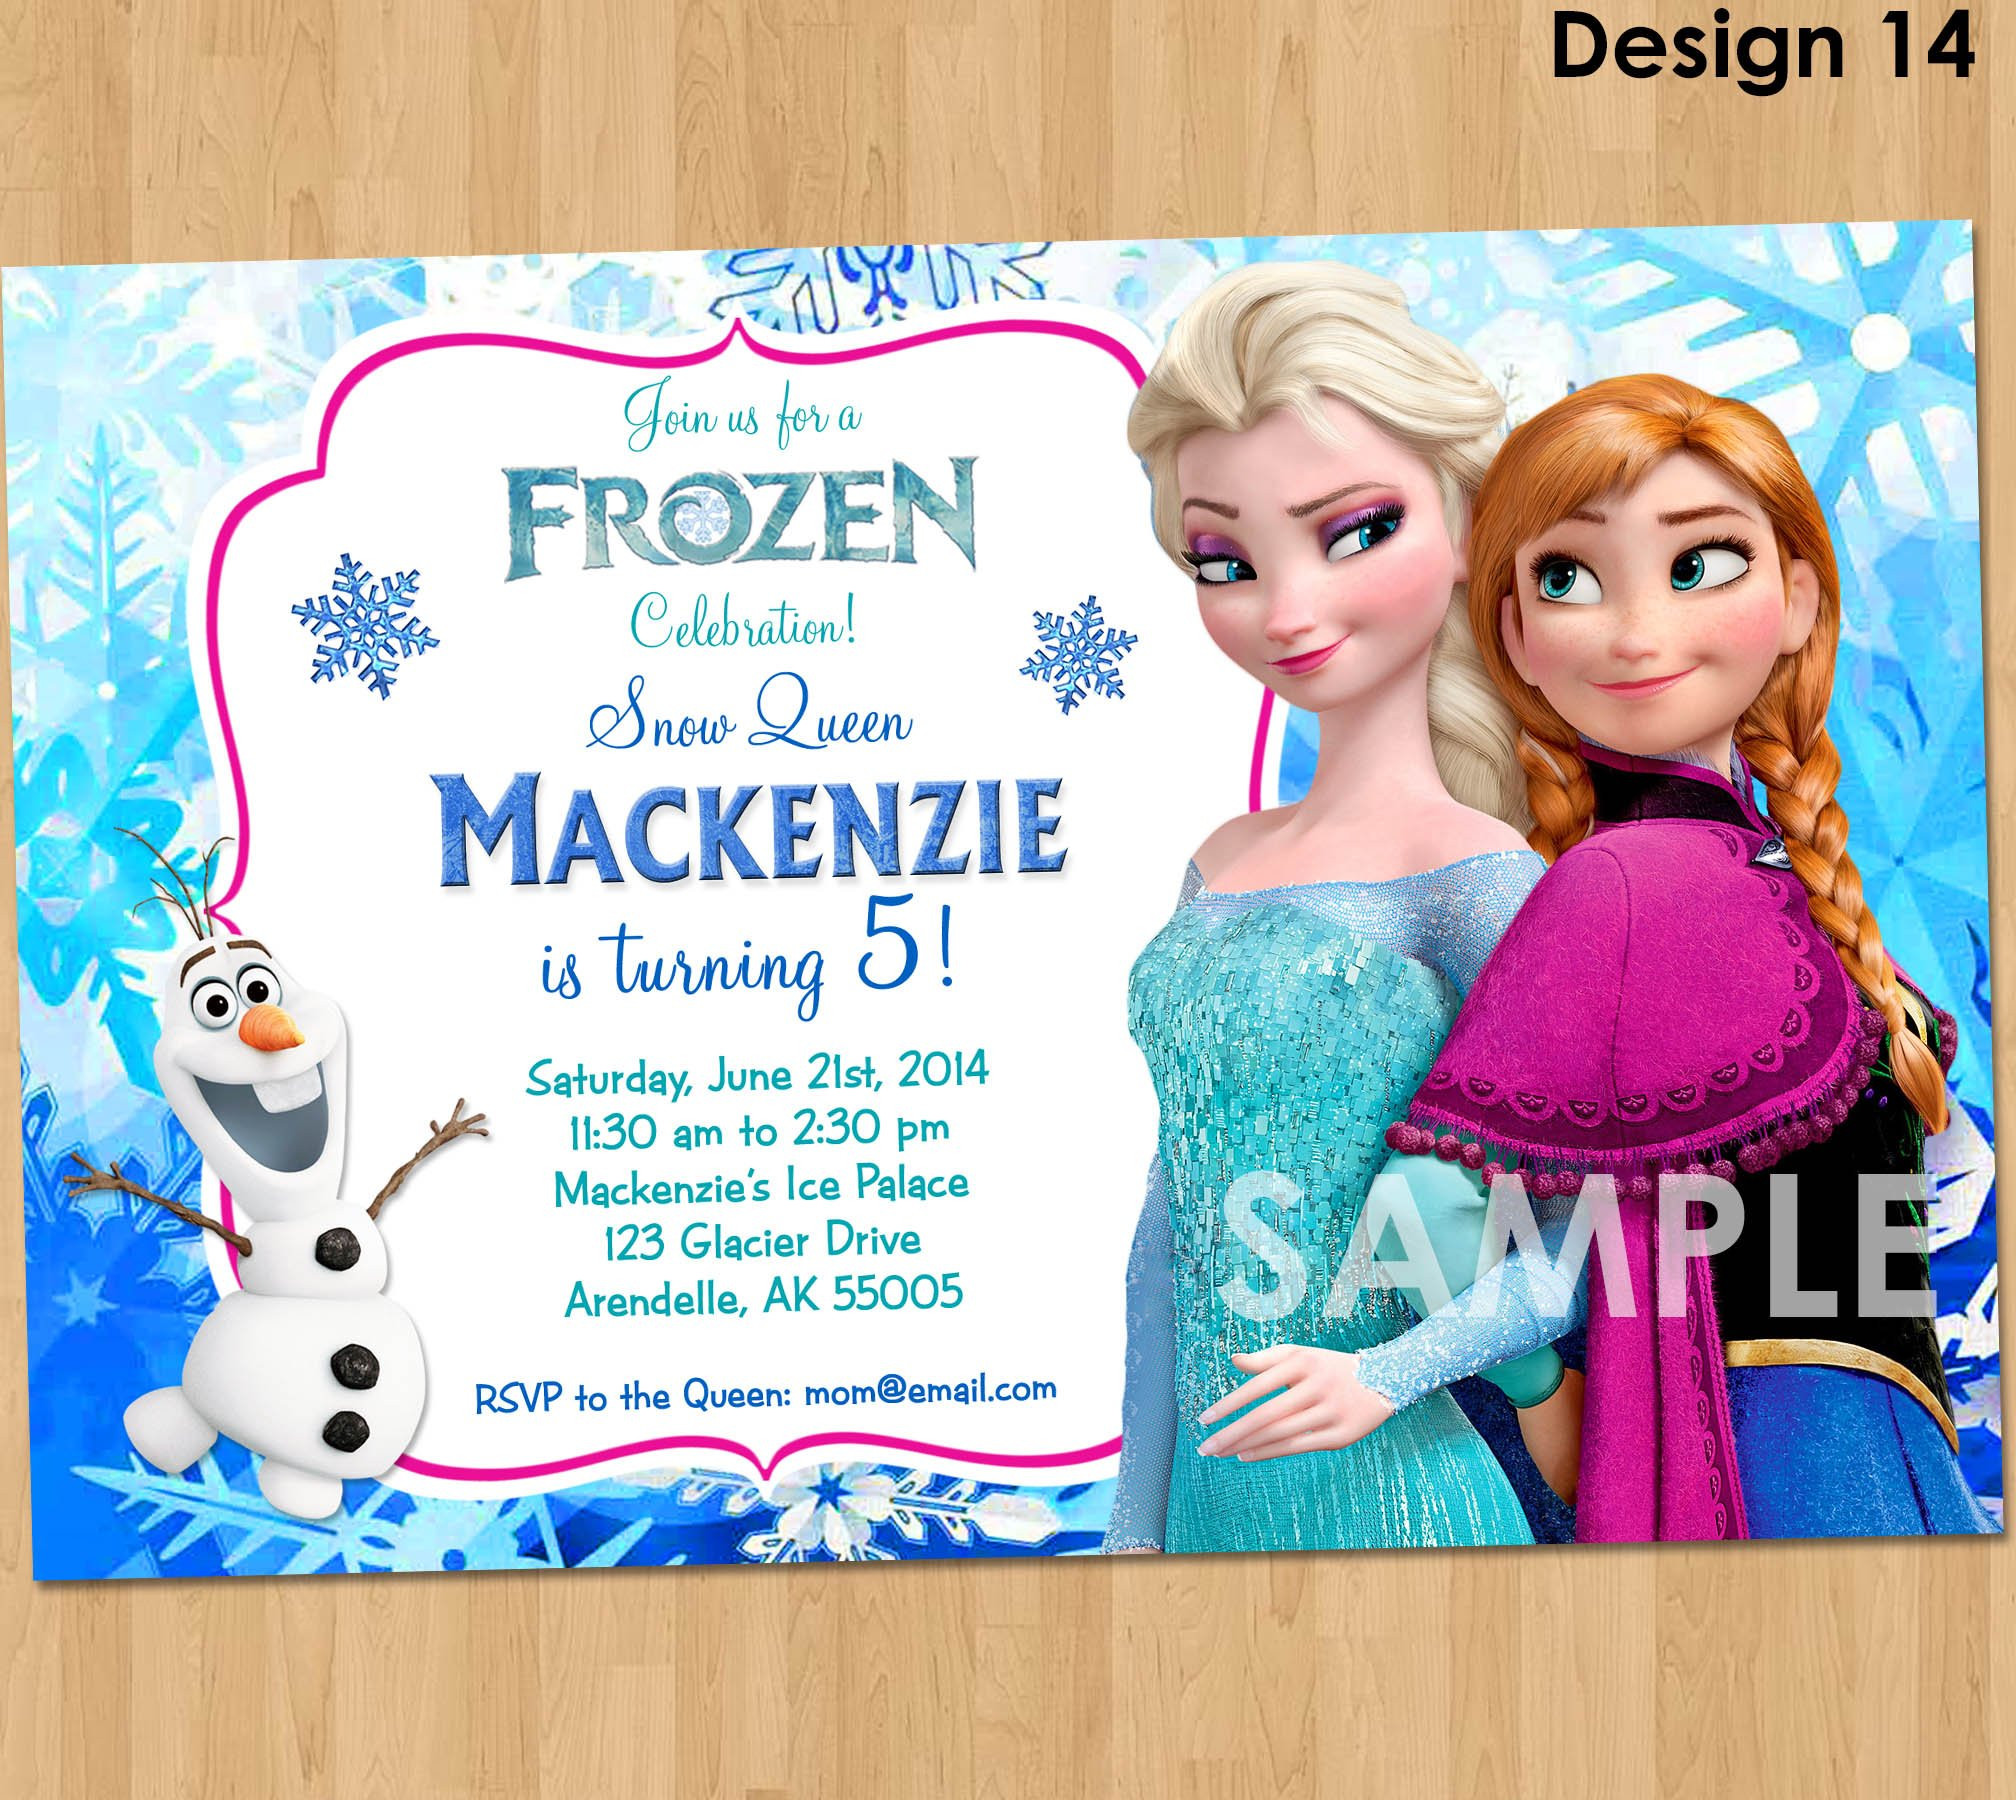 Frozen Printable Birthday Invitations Frozen Invitation Frozen Birthday Invitation Disney Frozen Party Invites Birthday Party Ideas Printable Elsa Anna Olaf